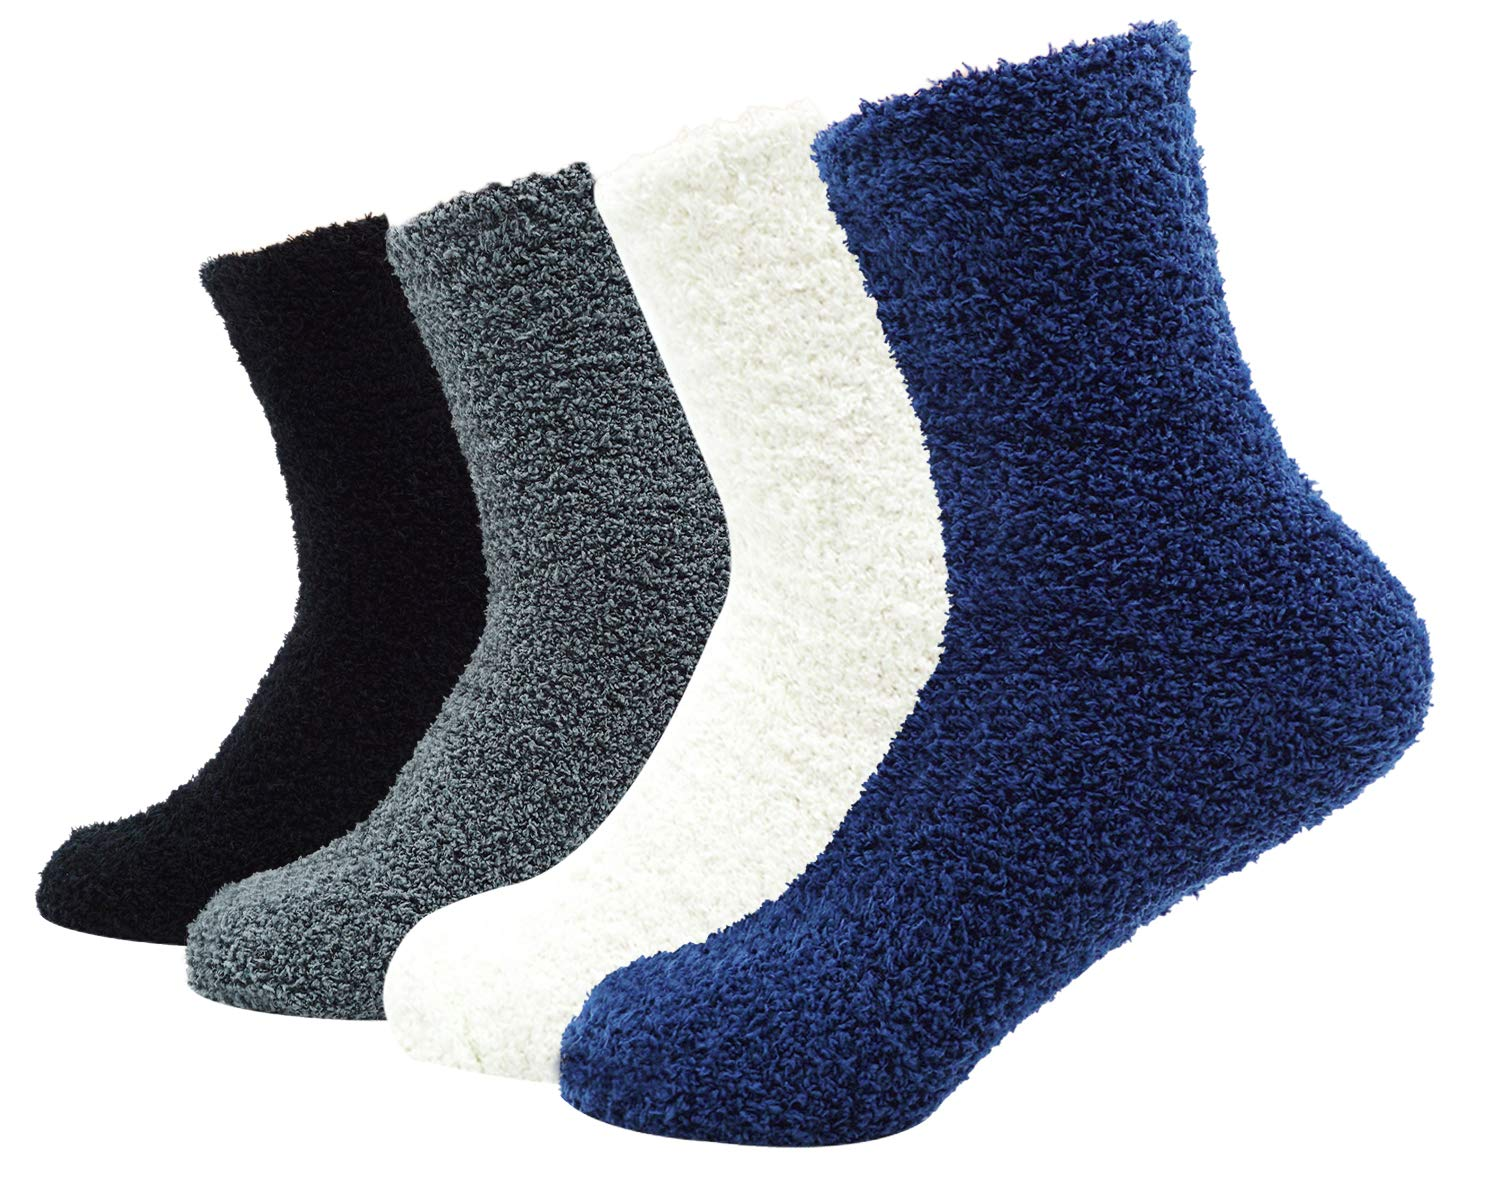 Unisex Fuzzy Microfiber Socks 4 Pack Thick Warm Comfort Crew Fashion Socks, Style 1